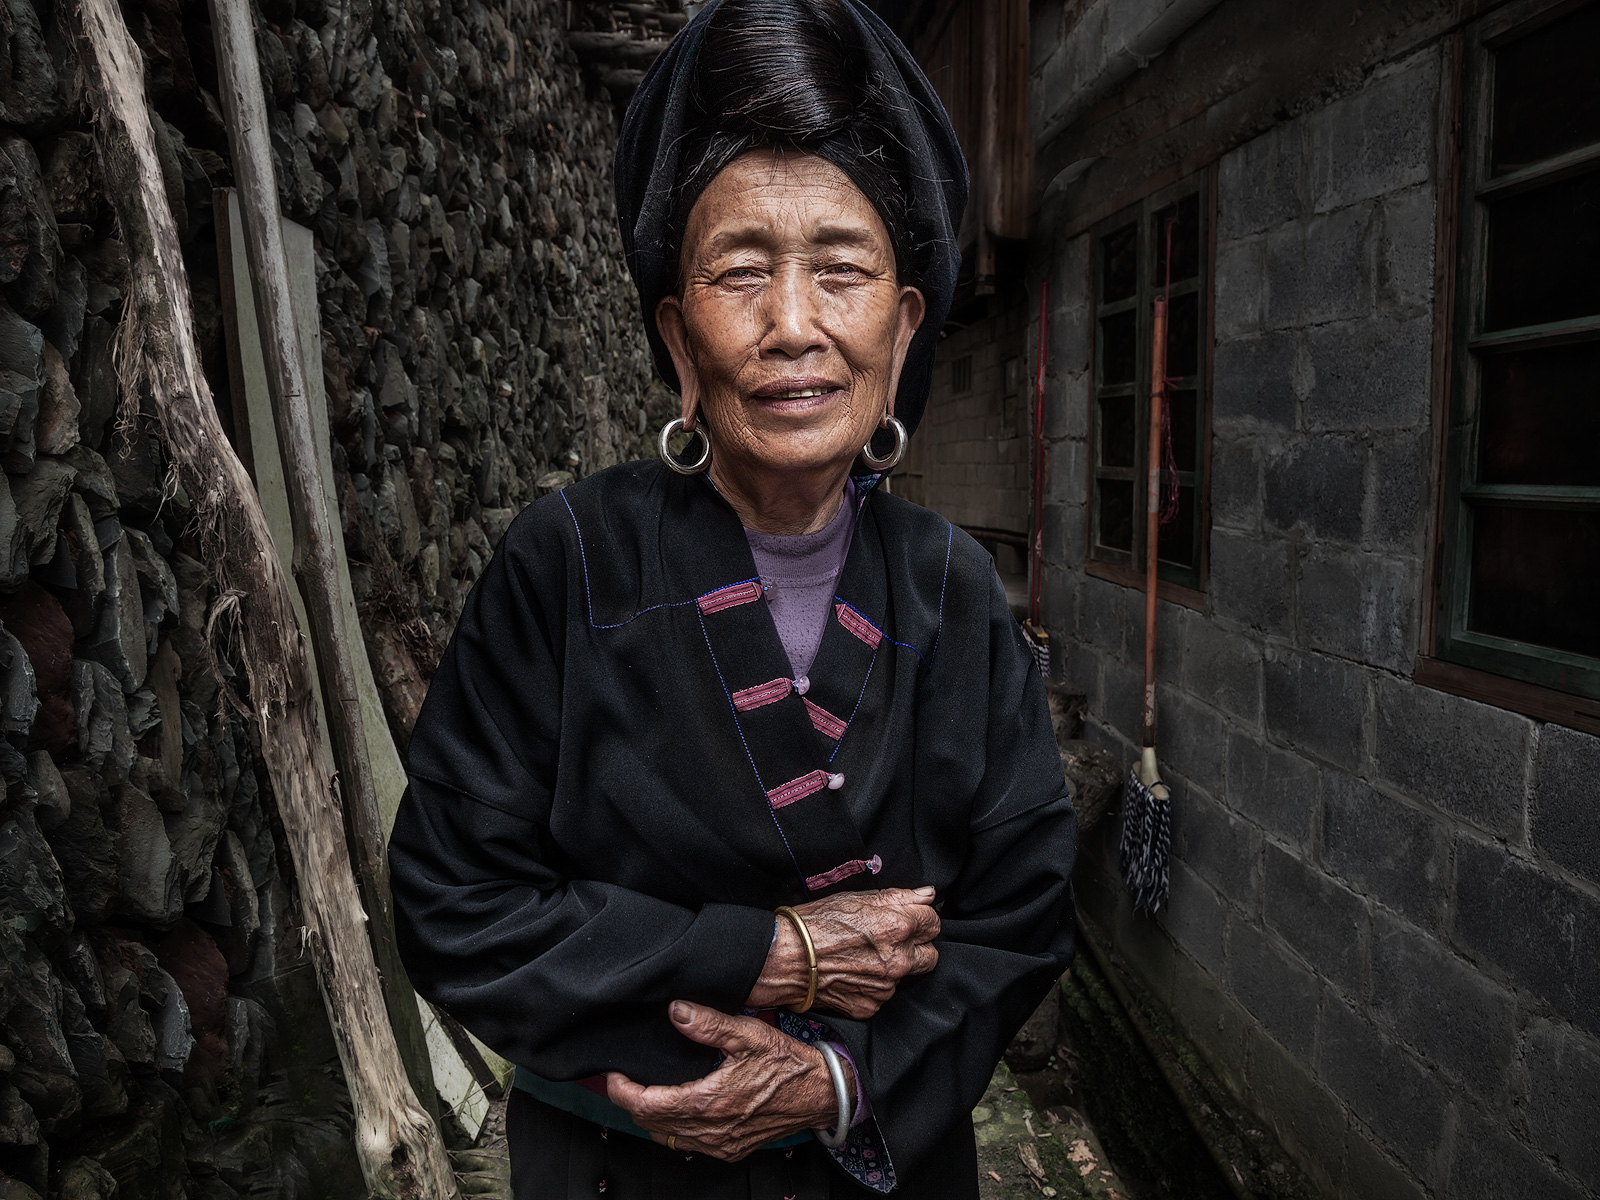 asia,asian,china,chinese,da zhai,da zhai terrace fields,dazhai,elderly,environmental portait,female,flash,lady,longji,longji rice terraces,longsheng,old,older,people,portrait,standing,terraces,woman,x, photo